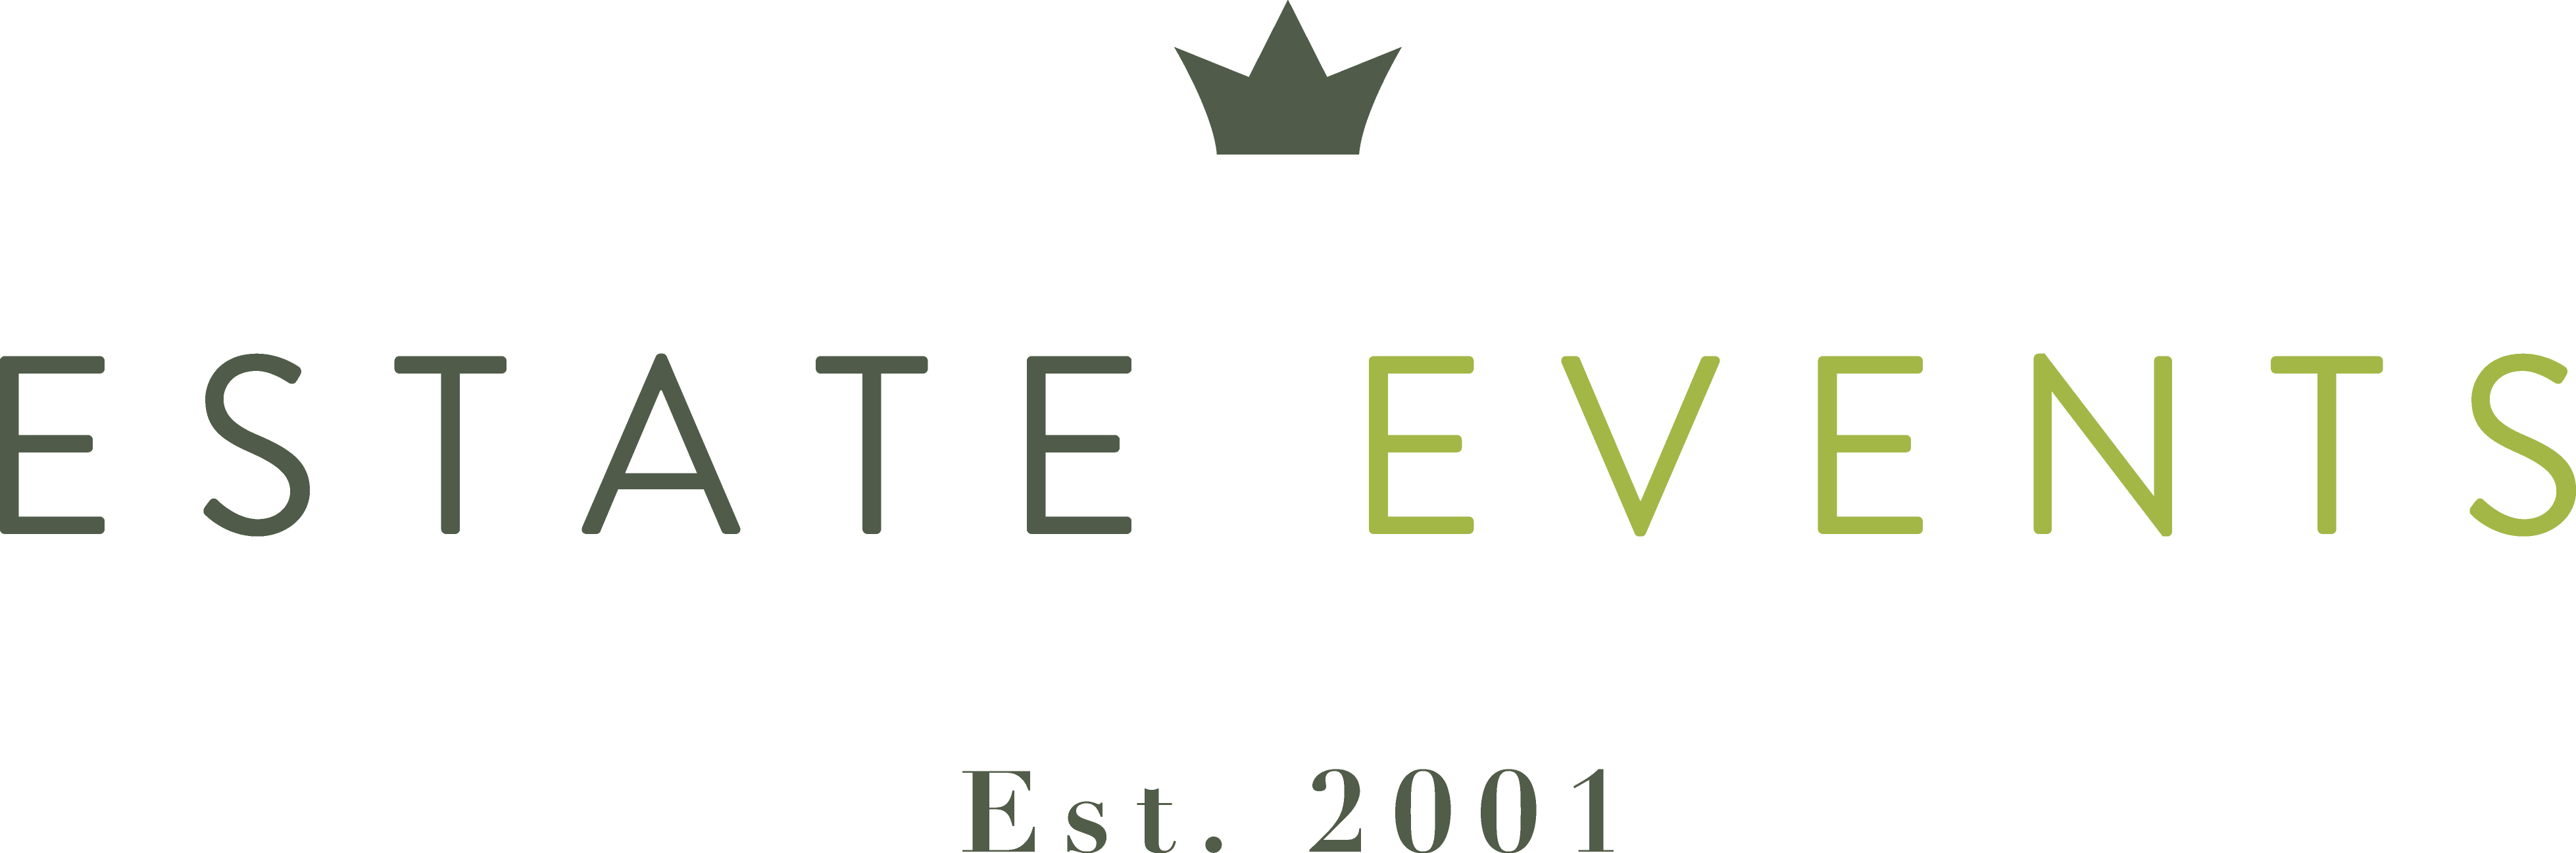 Estate Events